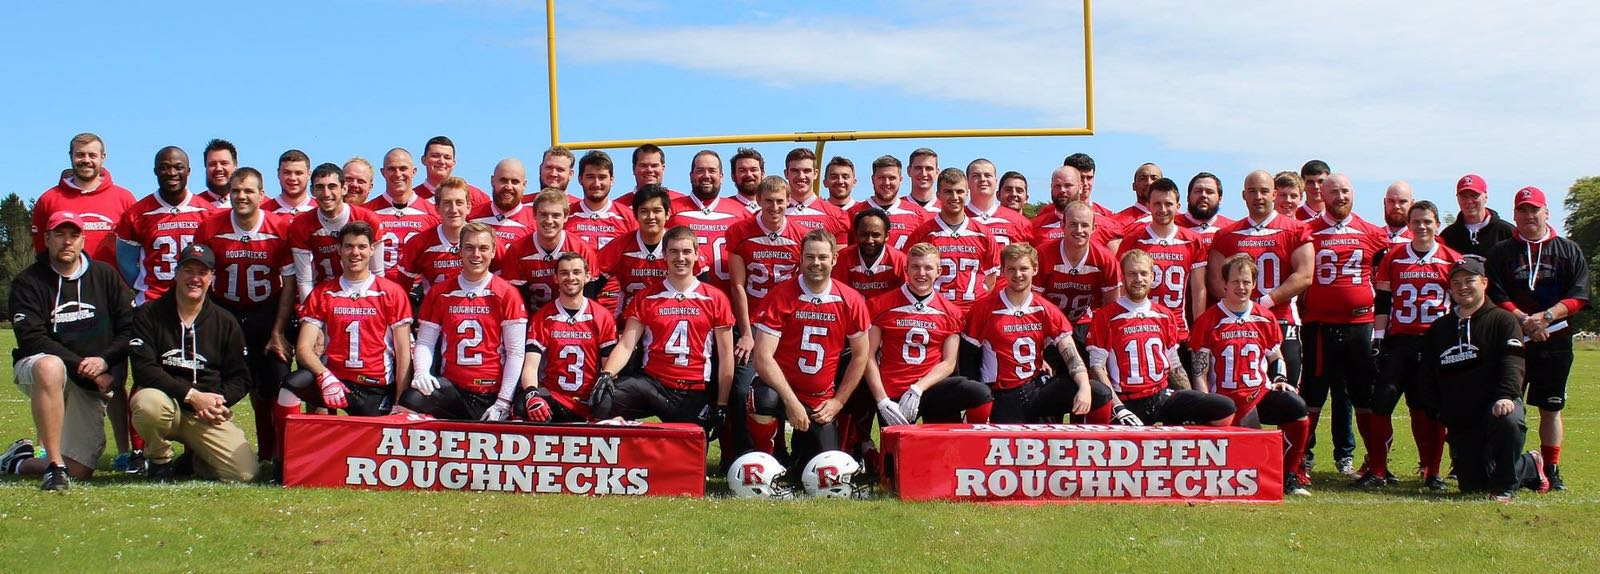 Aberdeen Roughnecks GM Grant Travis on the difficulty starting an American Football team in the UK